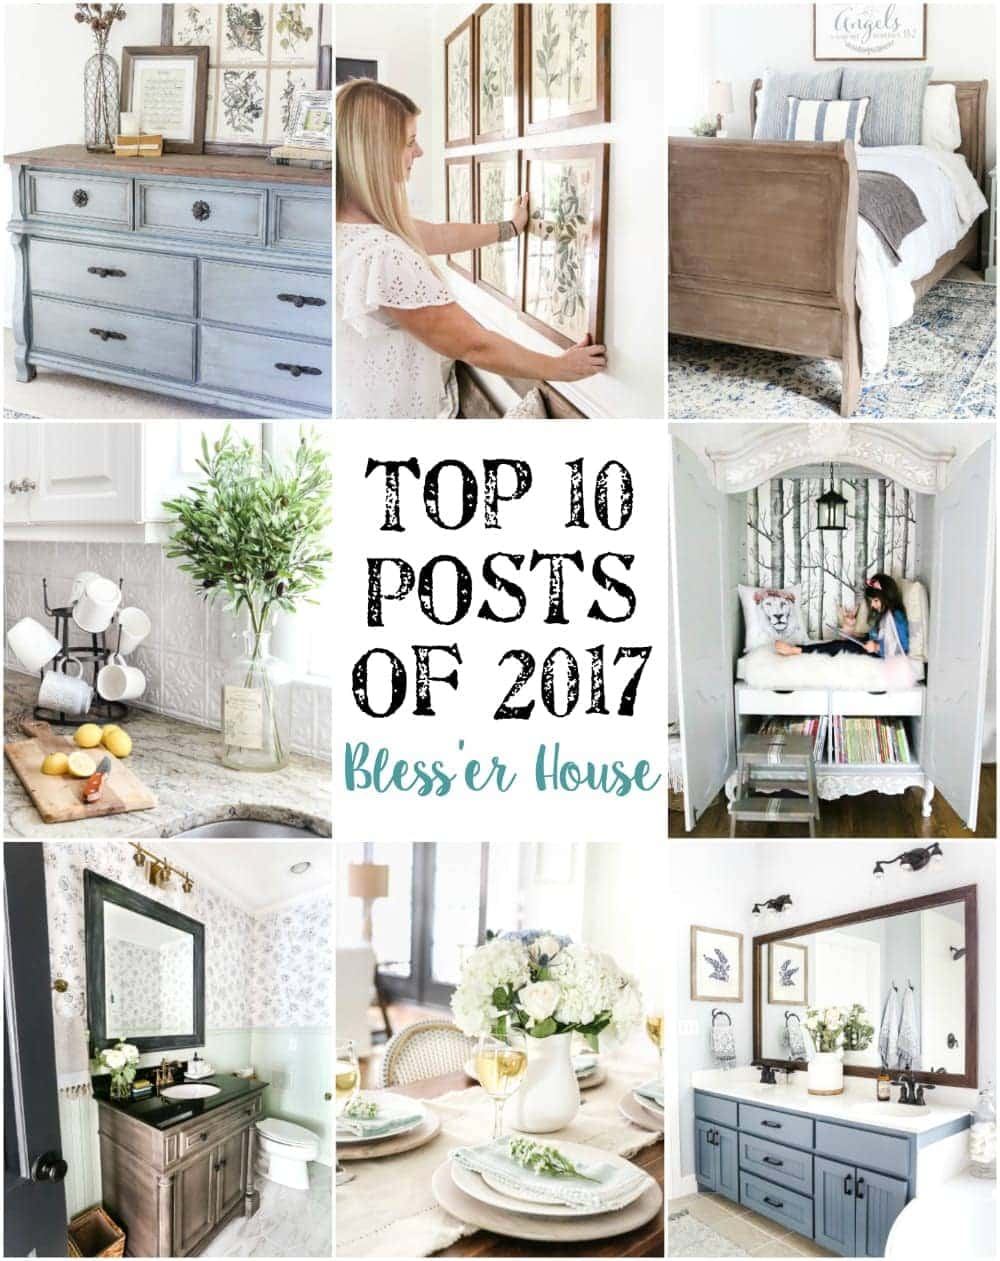 Top 10 Posts of 2017 - Bless\'er House